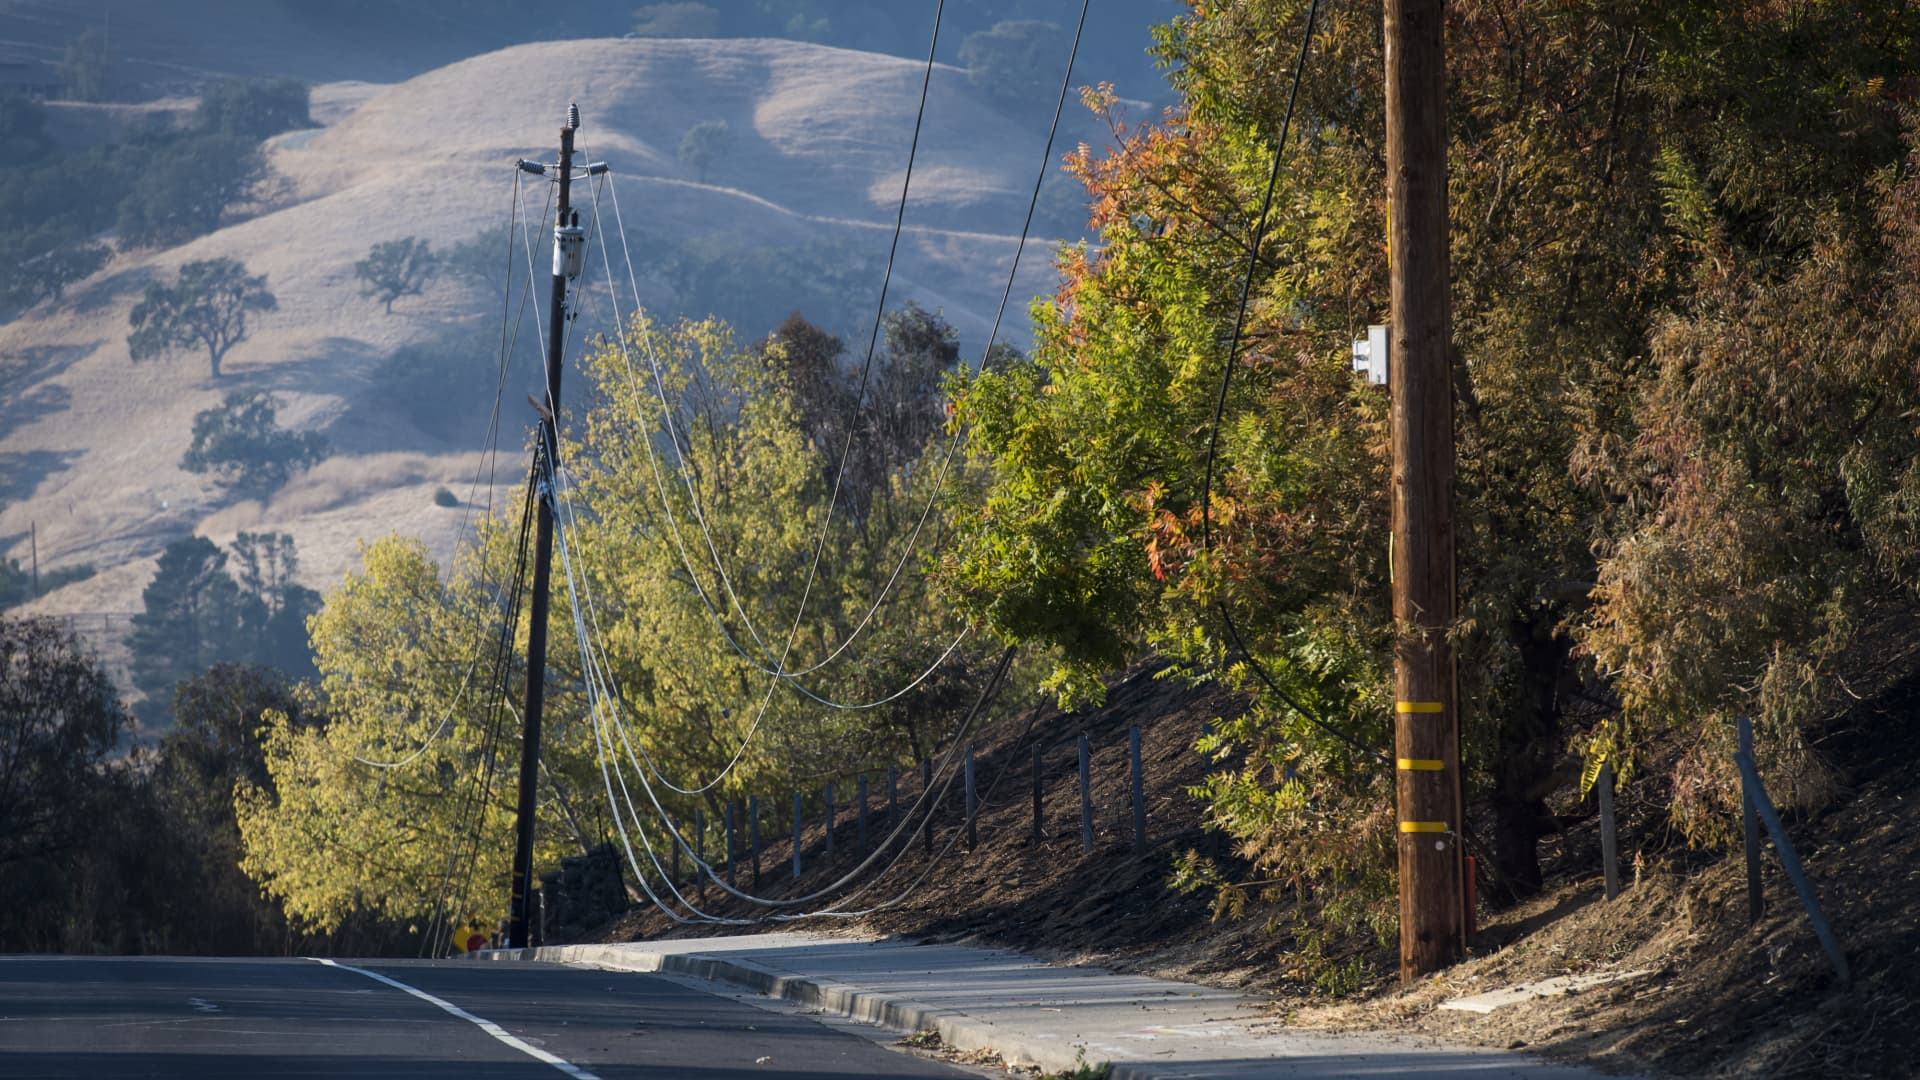 Fallen power lines touch the ground on Camino Diablo road in Lafayette, California, U.S., on Monday, Oct. 28, 2019.